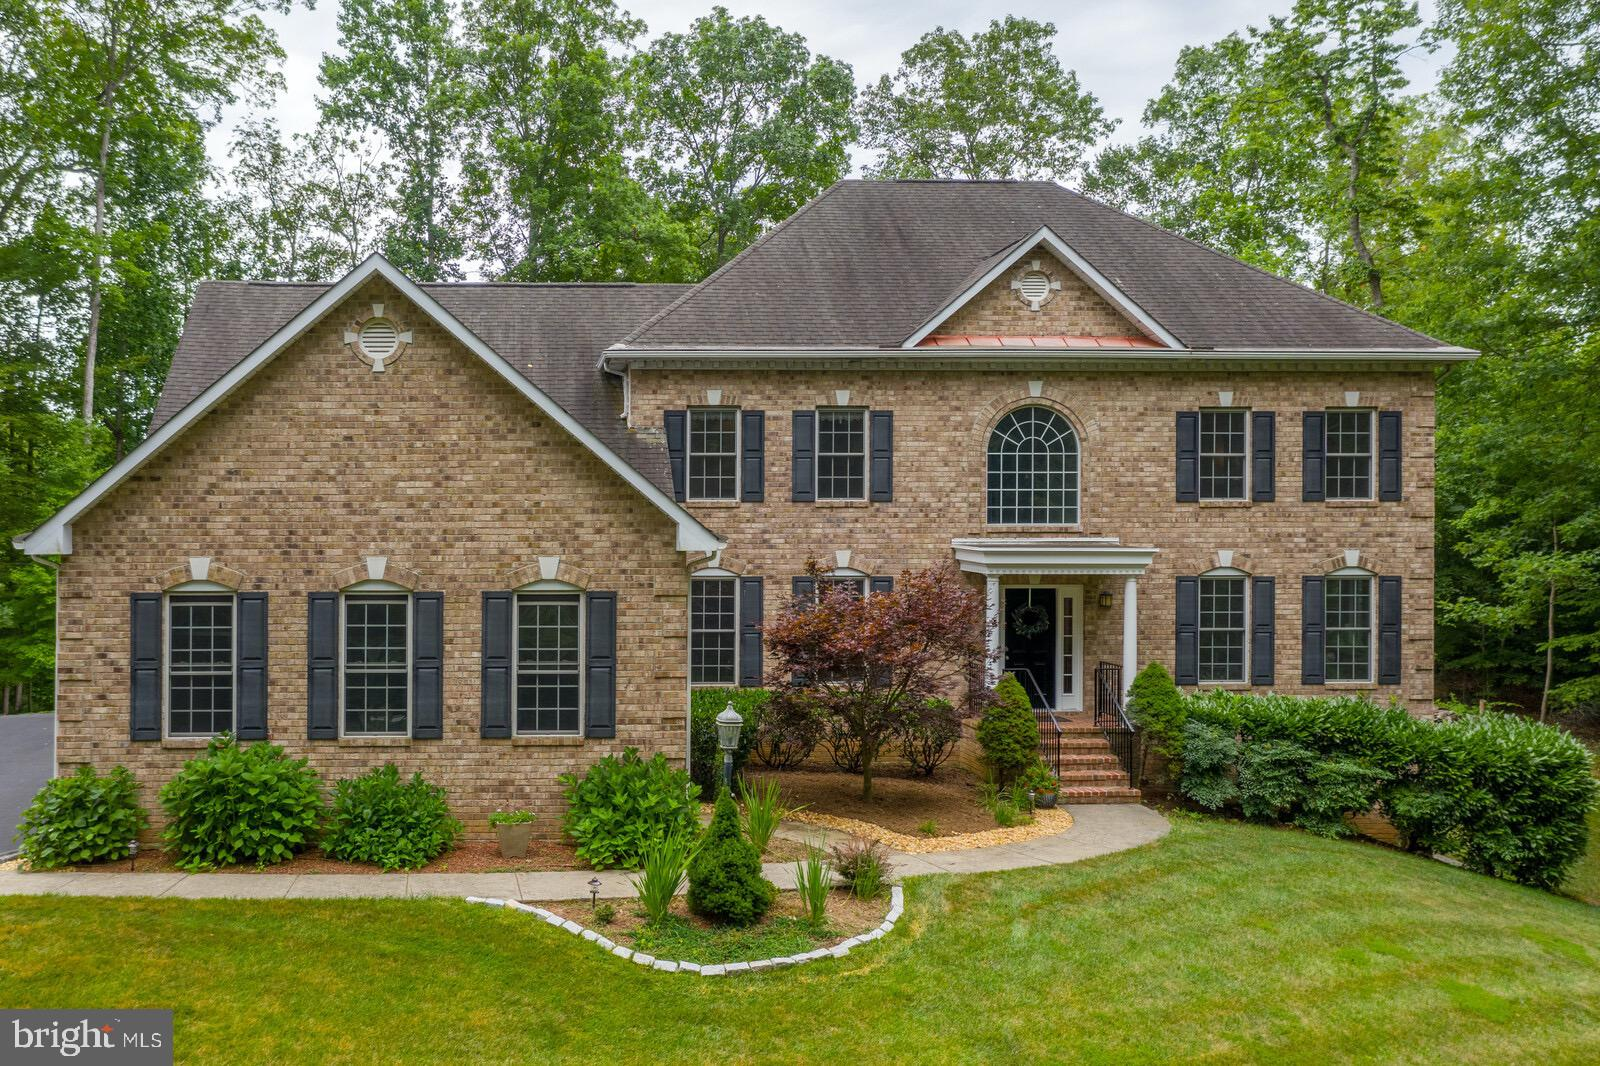 WELCOME TO YOUR OWN PRIVATE RETREAT!Stunning, well maintained Brick Front Colonial on almost 3 acres